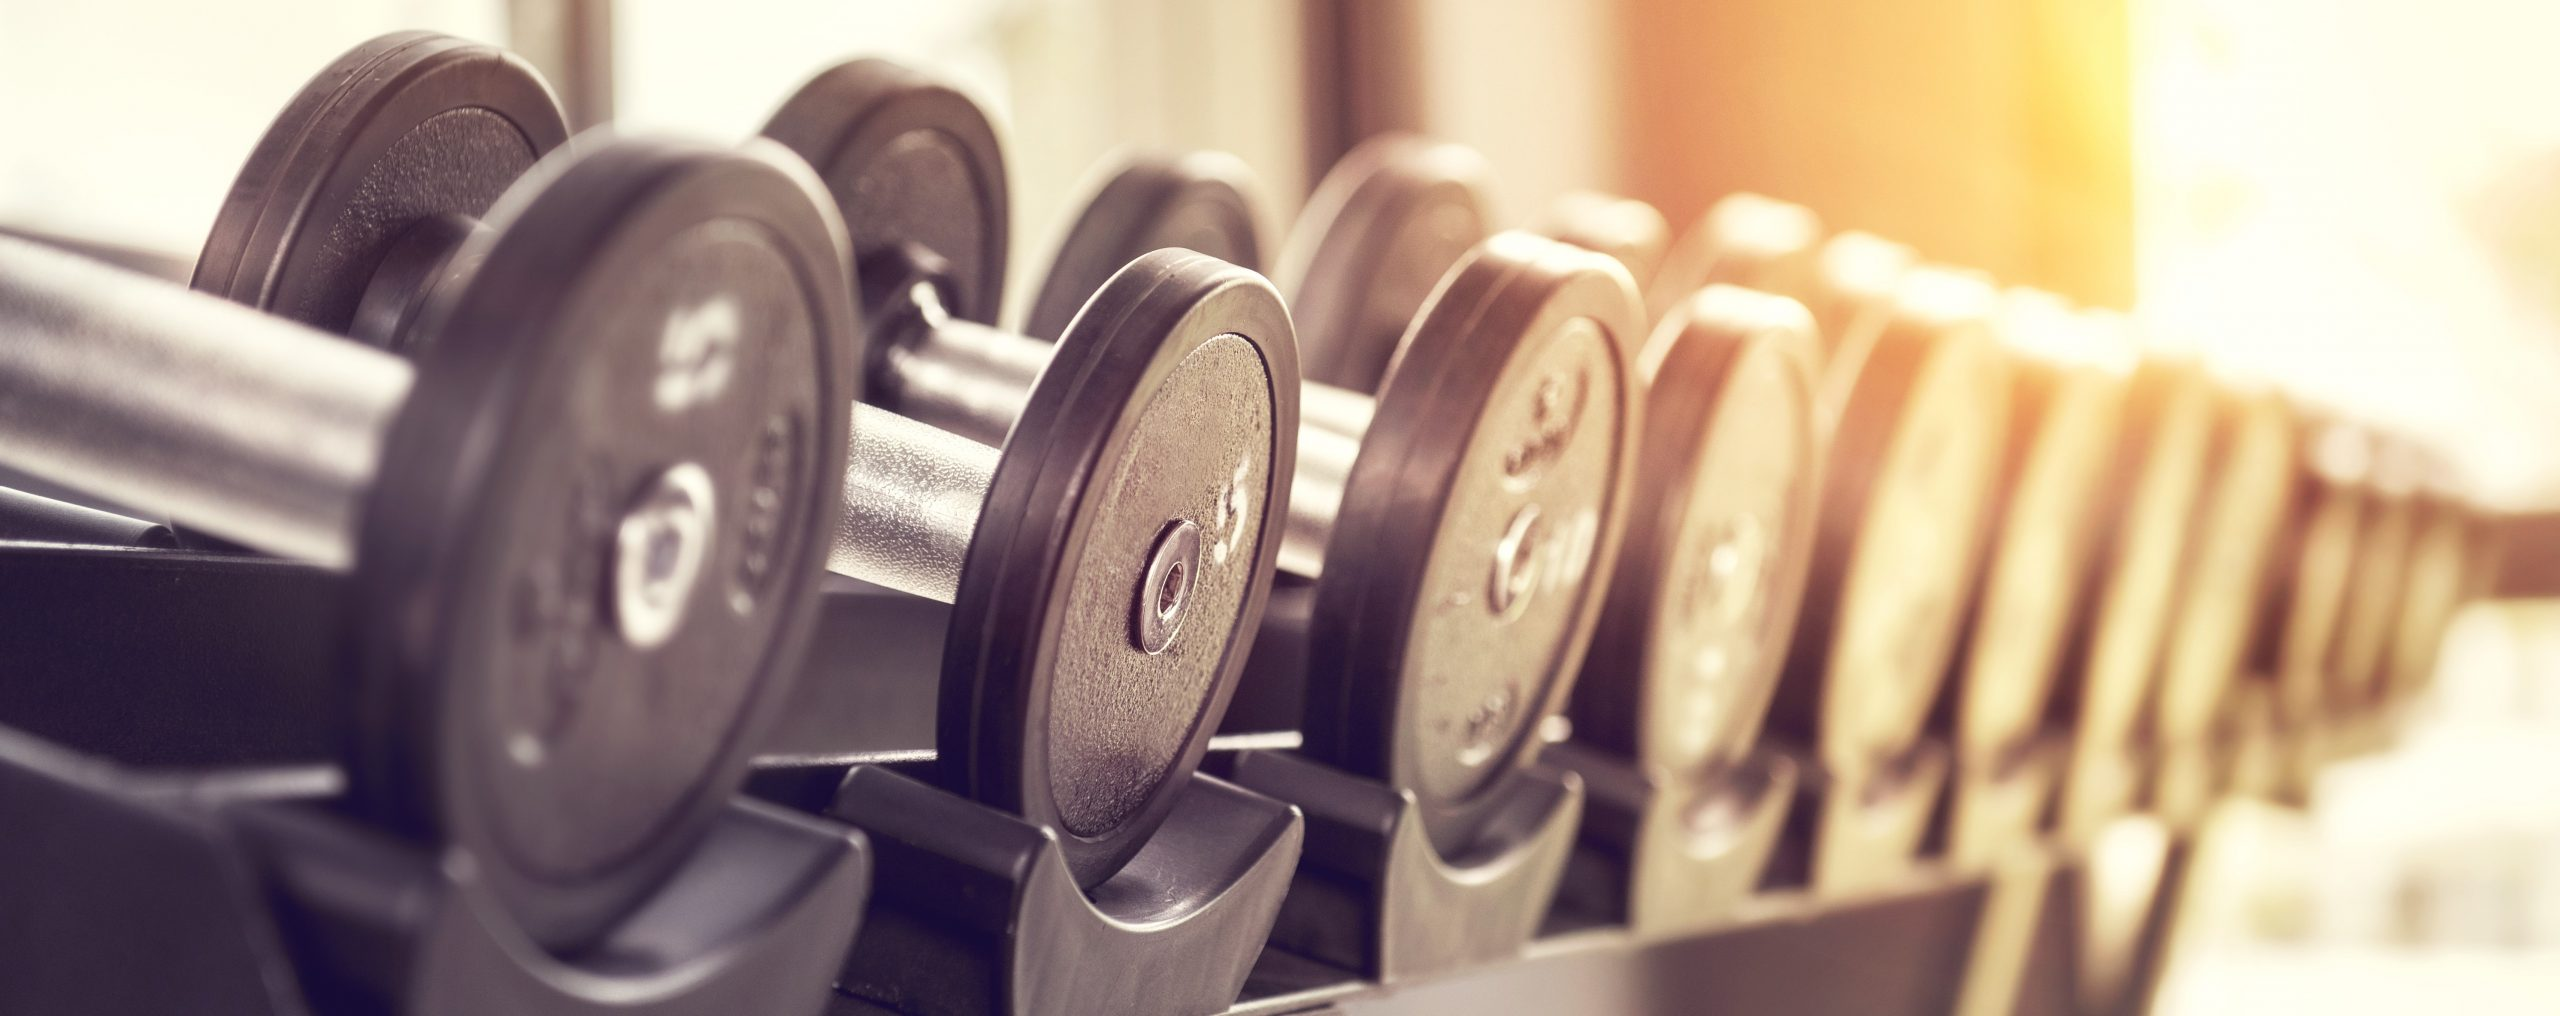 Rows of dumbbells in the gym with sunlight in morning.